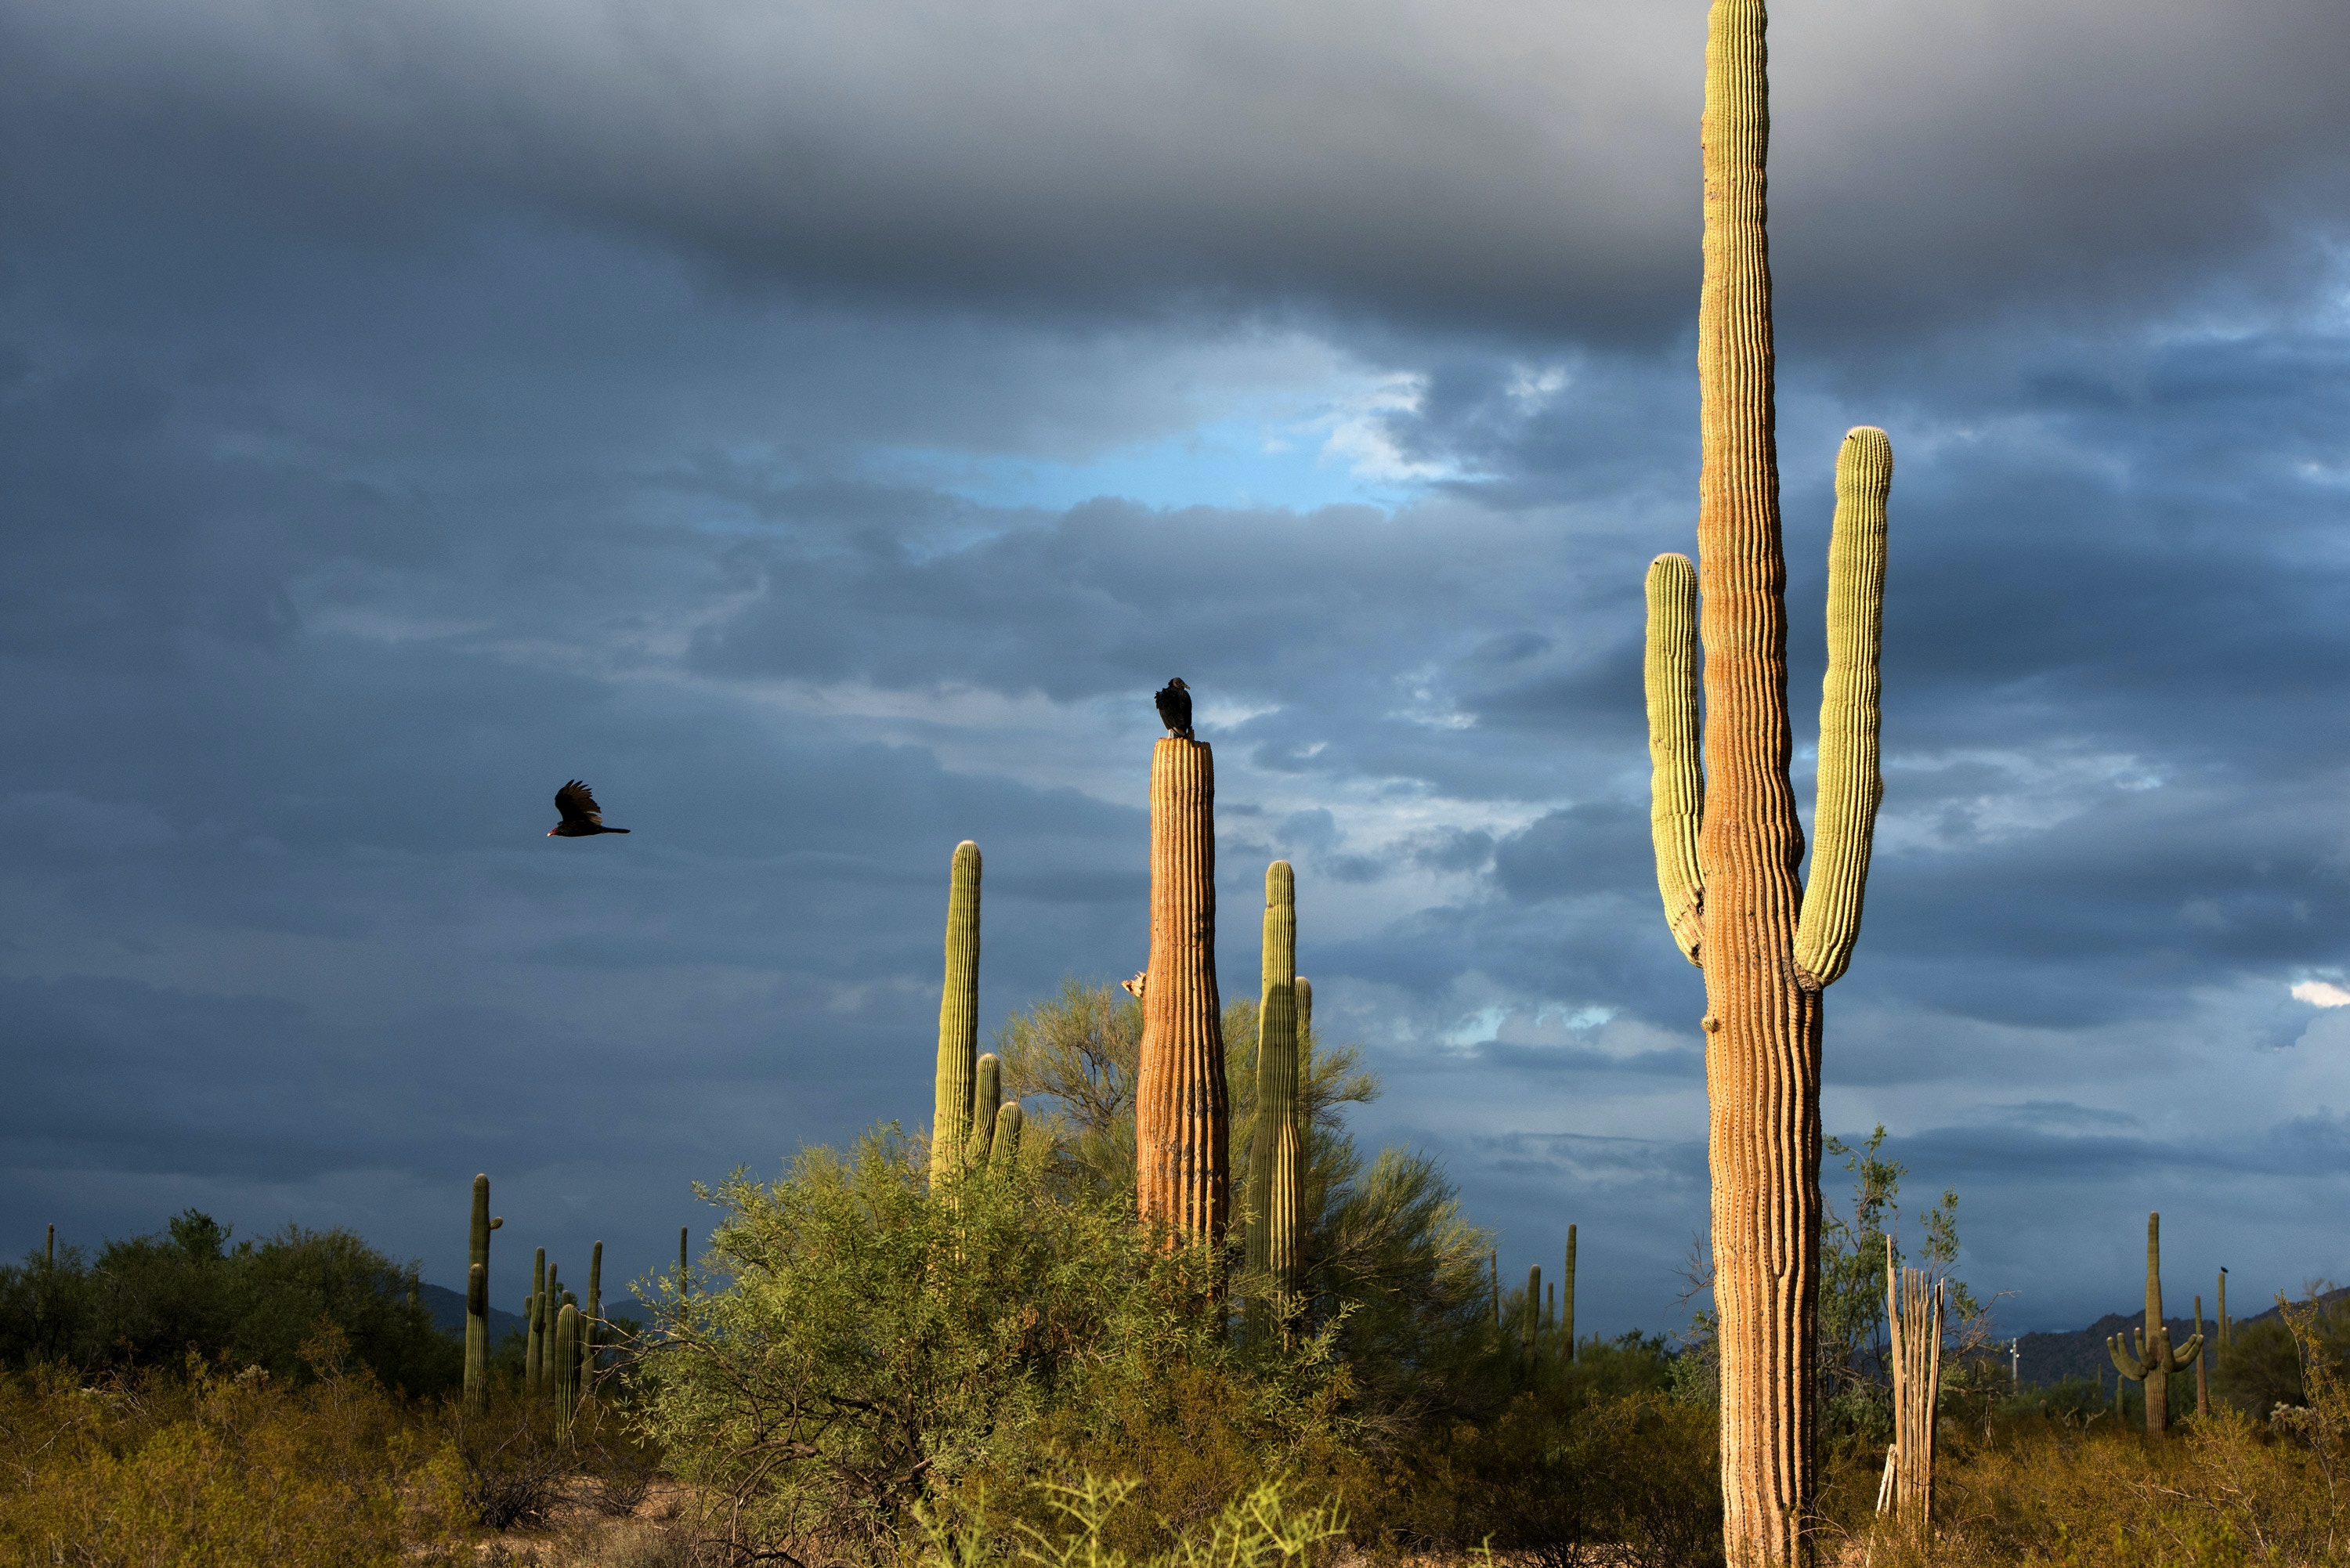 Organ Pipe, Ariz. September 26, 2019: Birds take advantage of a moment of respite from the unseasonable inclement weather to the west of Lukeville, Ariz. on Thursday September 26, 2019. (Ash Ponders for The Intercept)